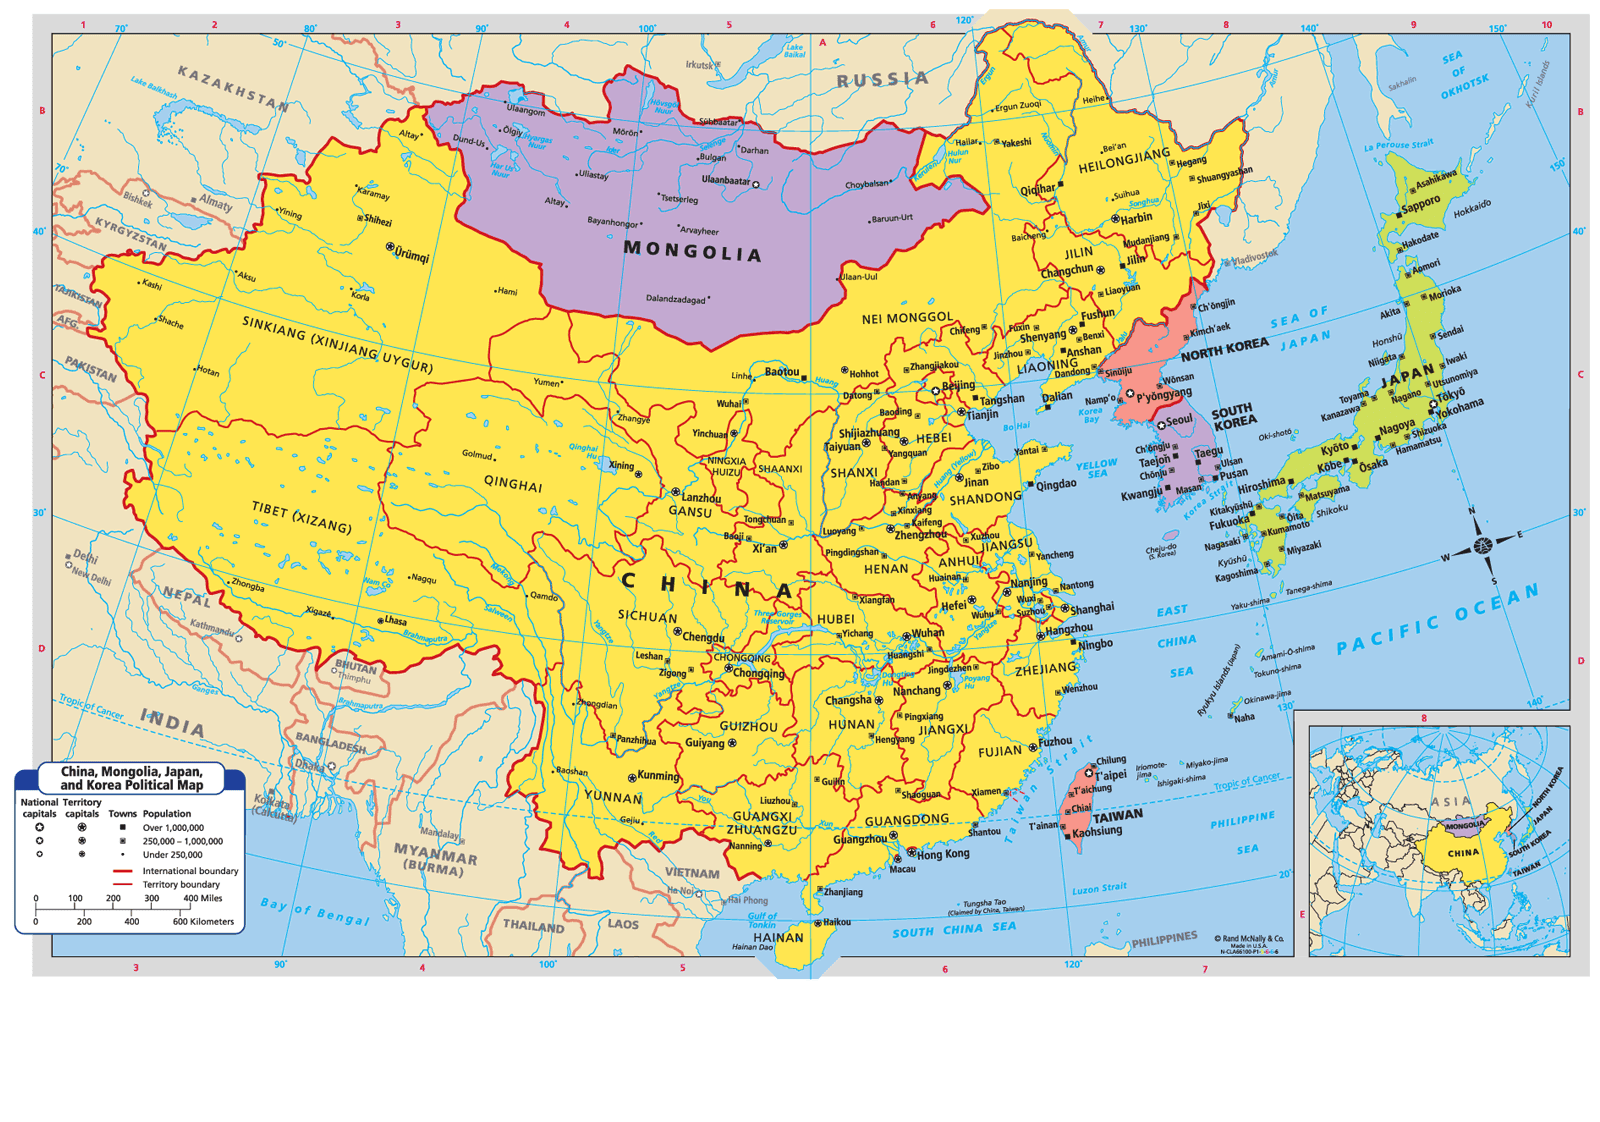 Maps China Mongolia The Koreas And Japan - Japan map political